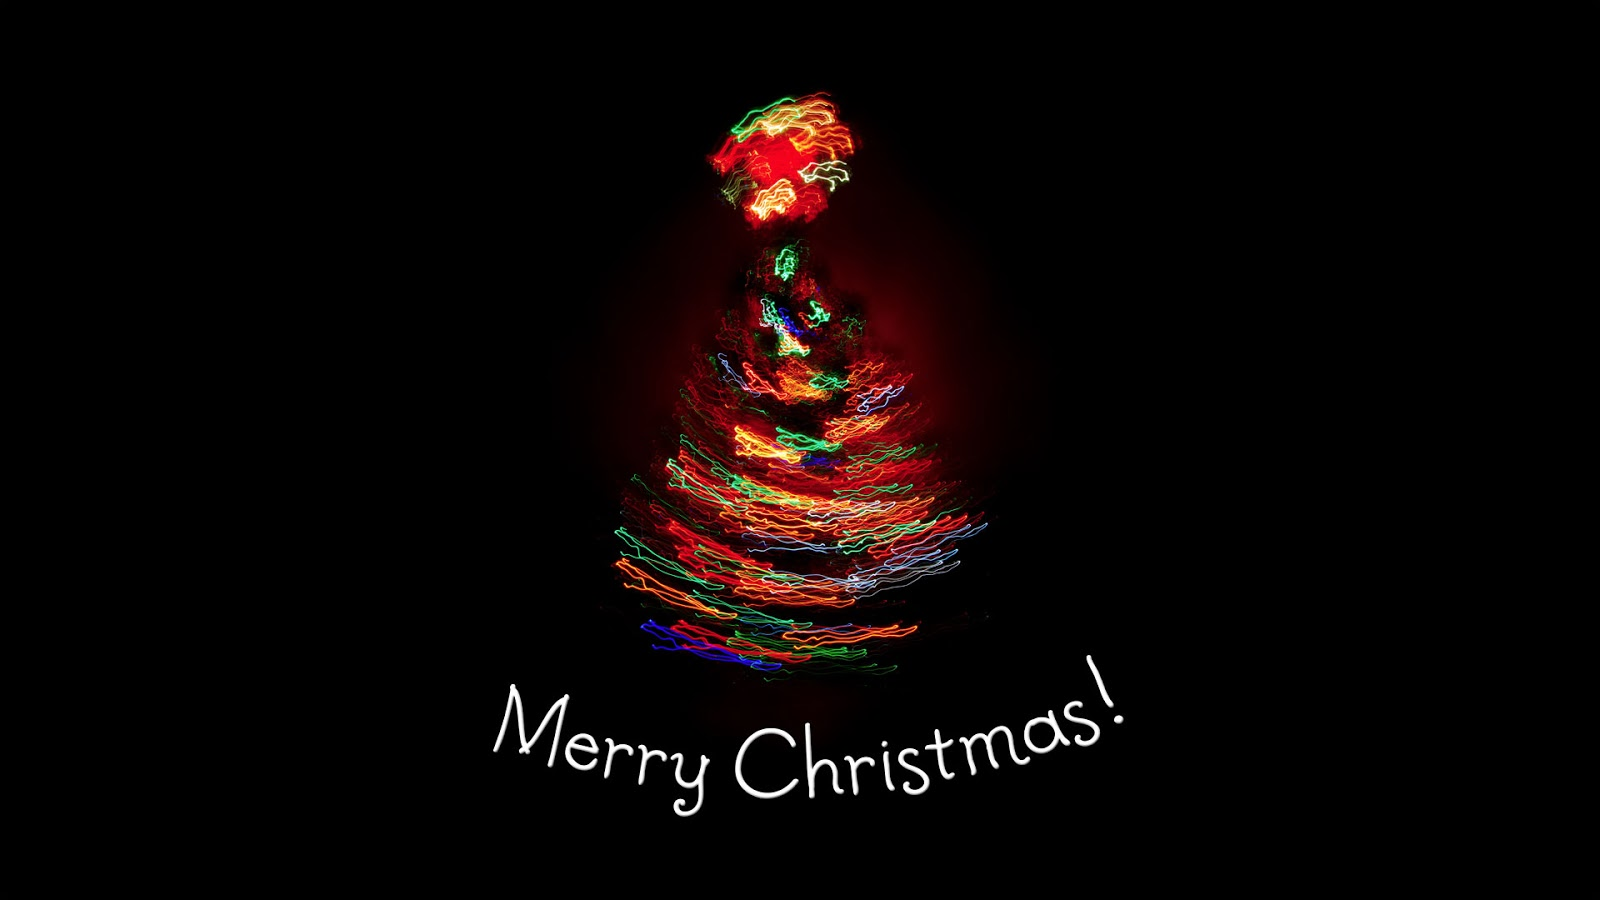 merry christmas to you wallpaper merry christmas wallpapers in hd 2013 free wallpaper